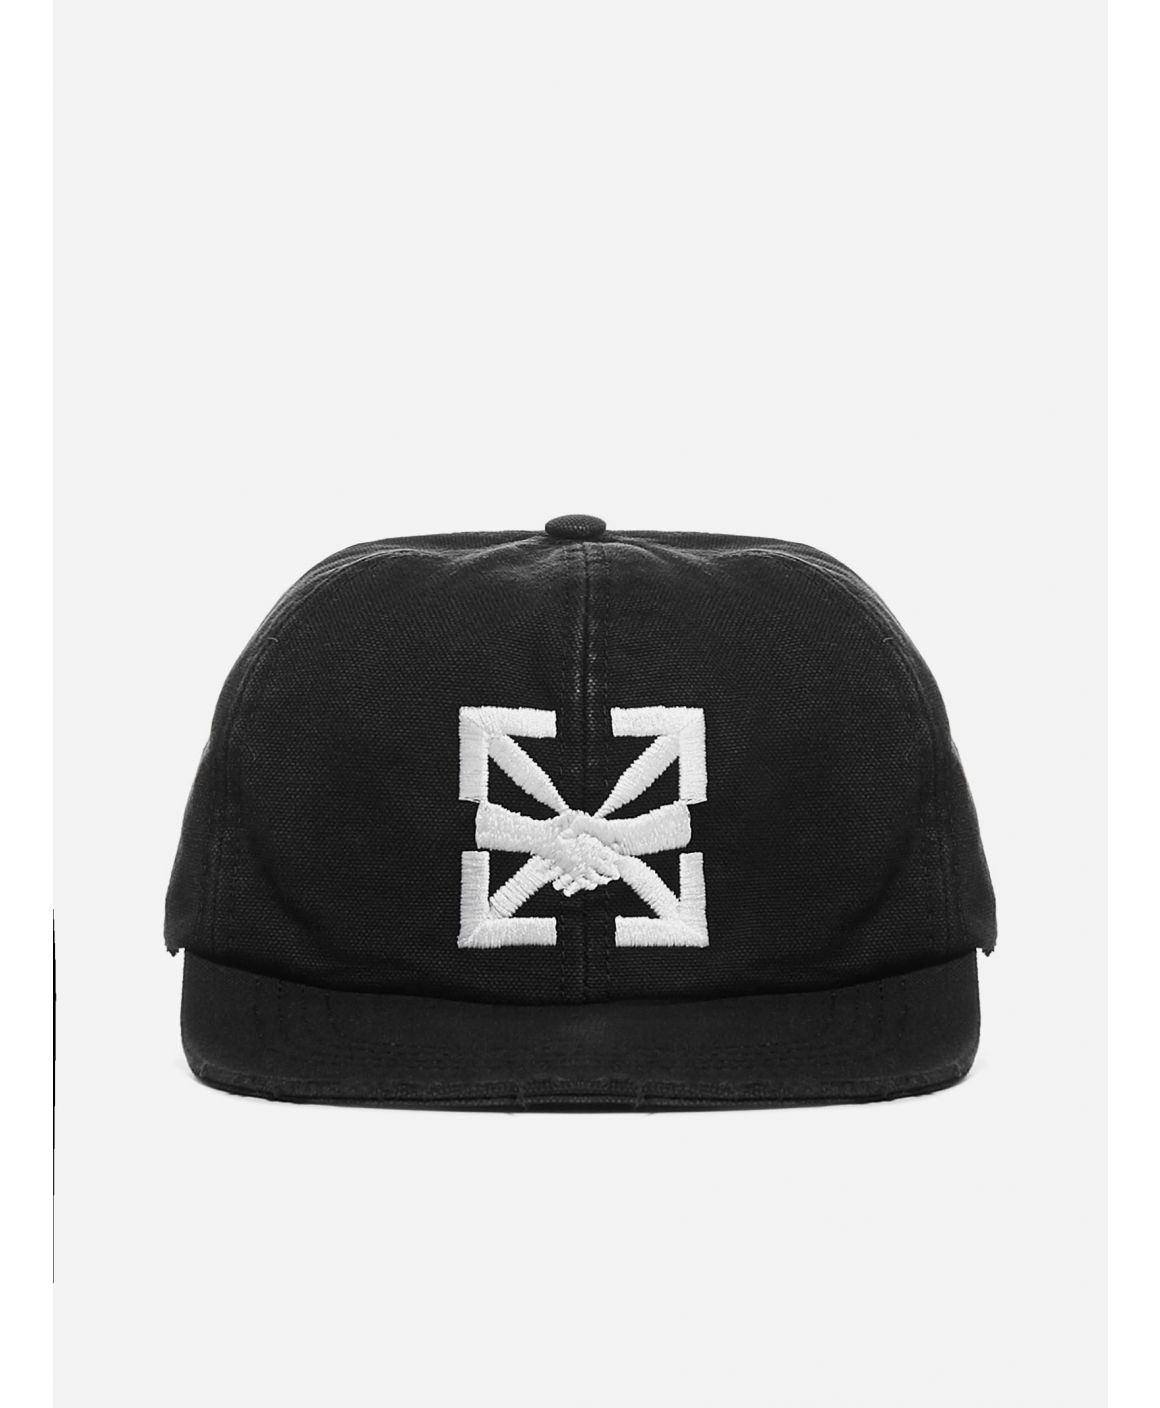 Agreement logo cotton baseball cap